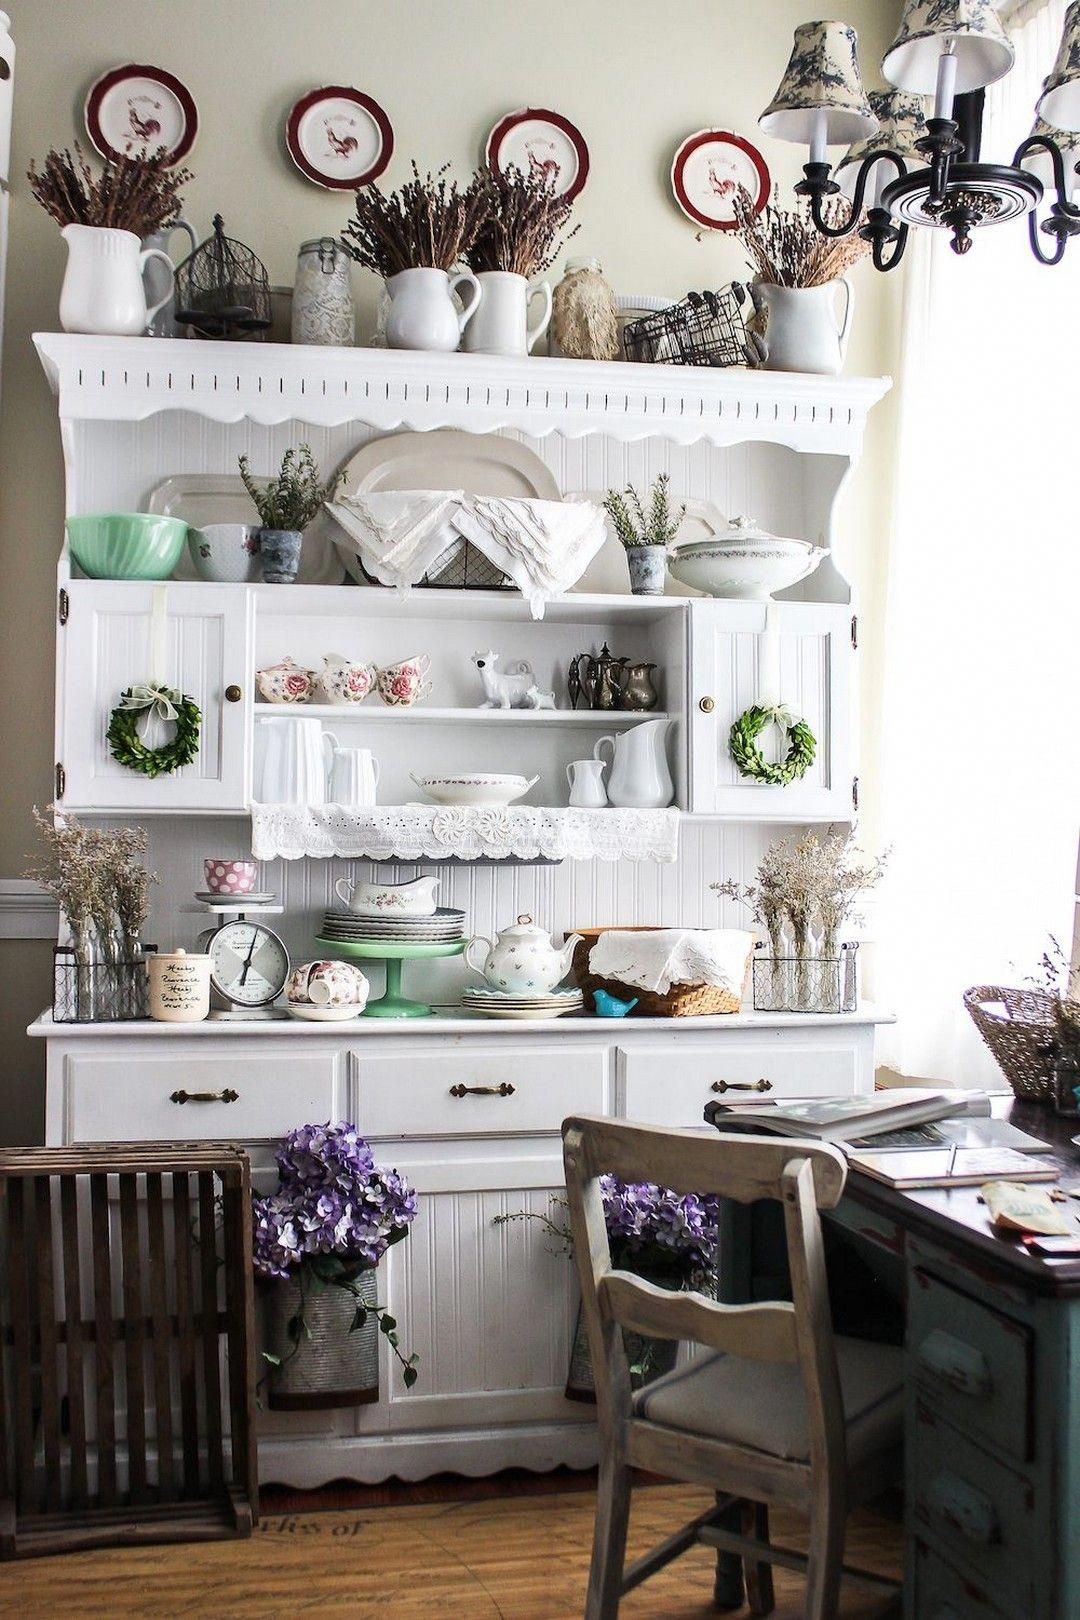 6 Charming French Kitchen Decor Inspirational Ideas Even in the